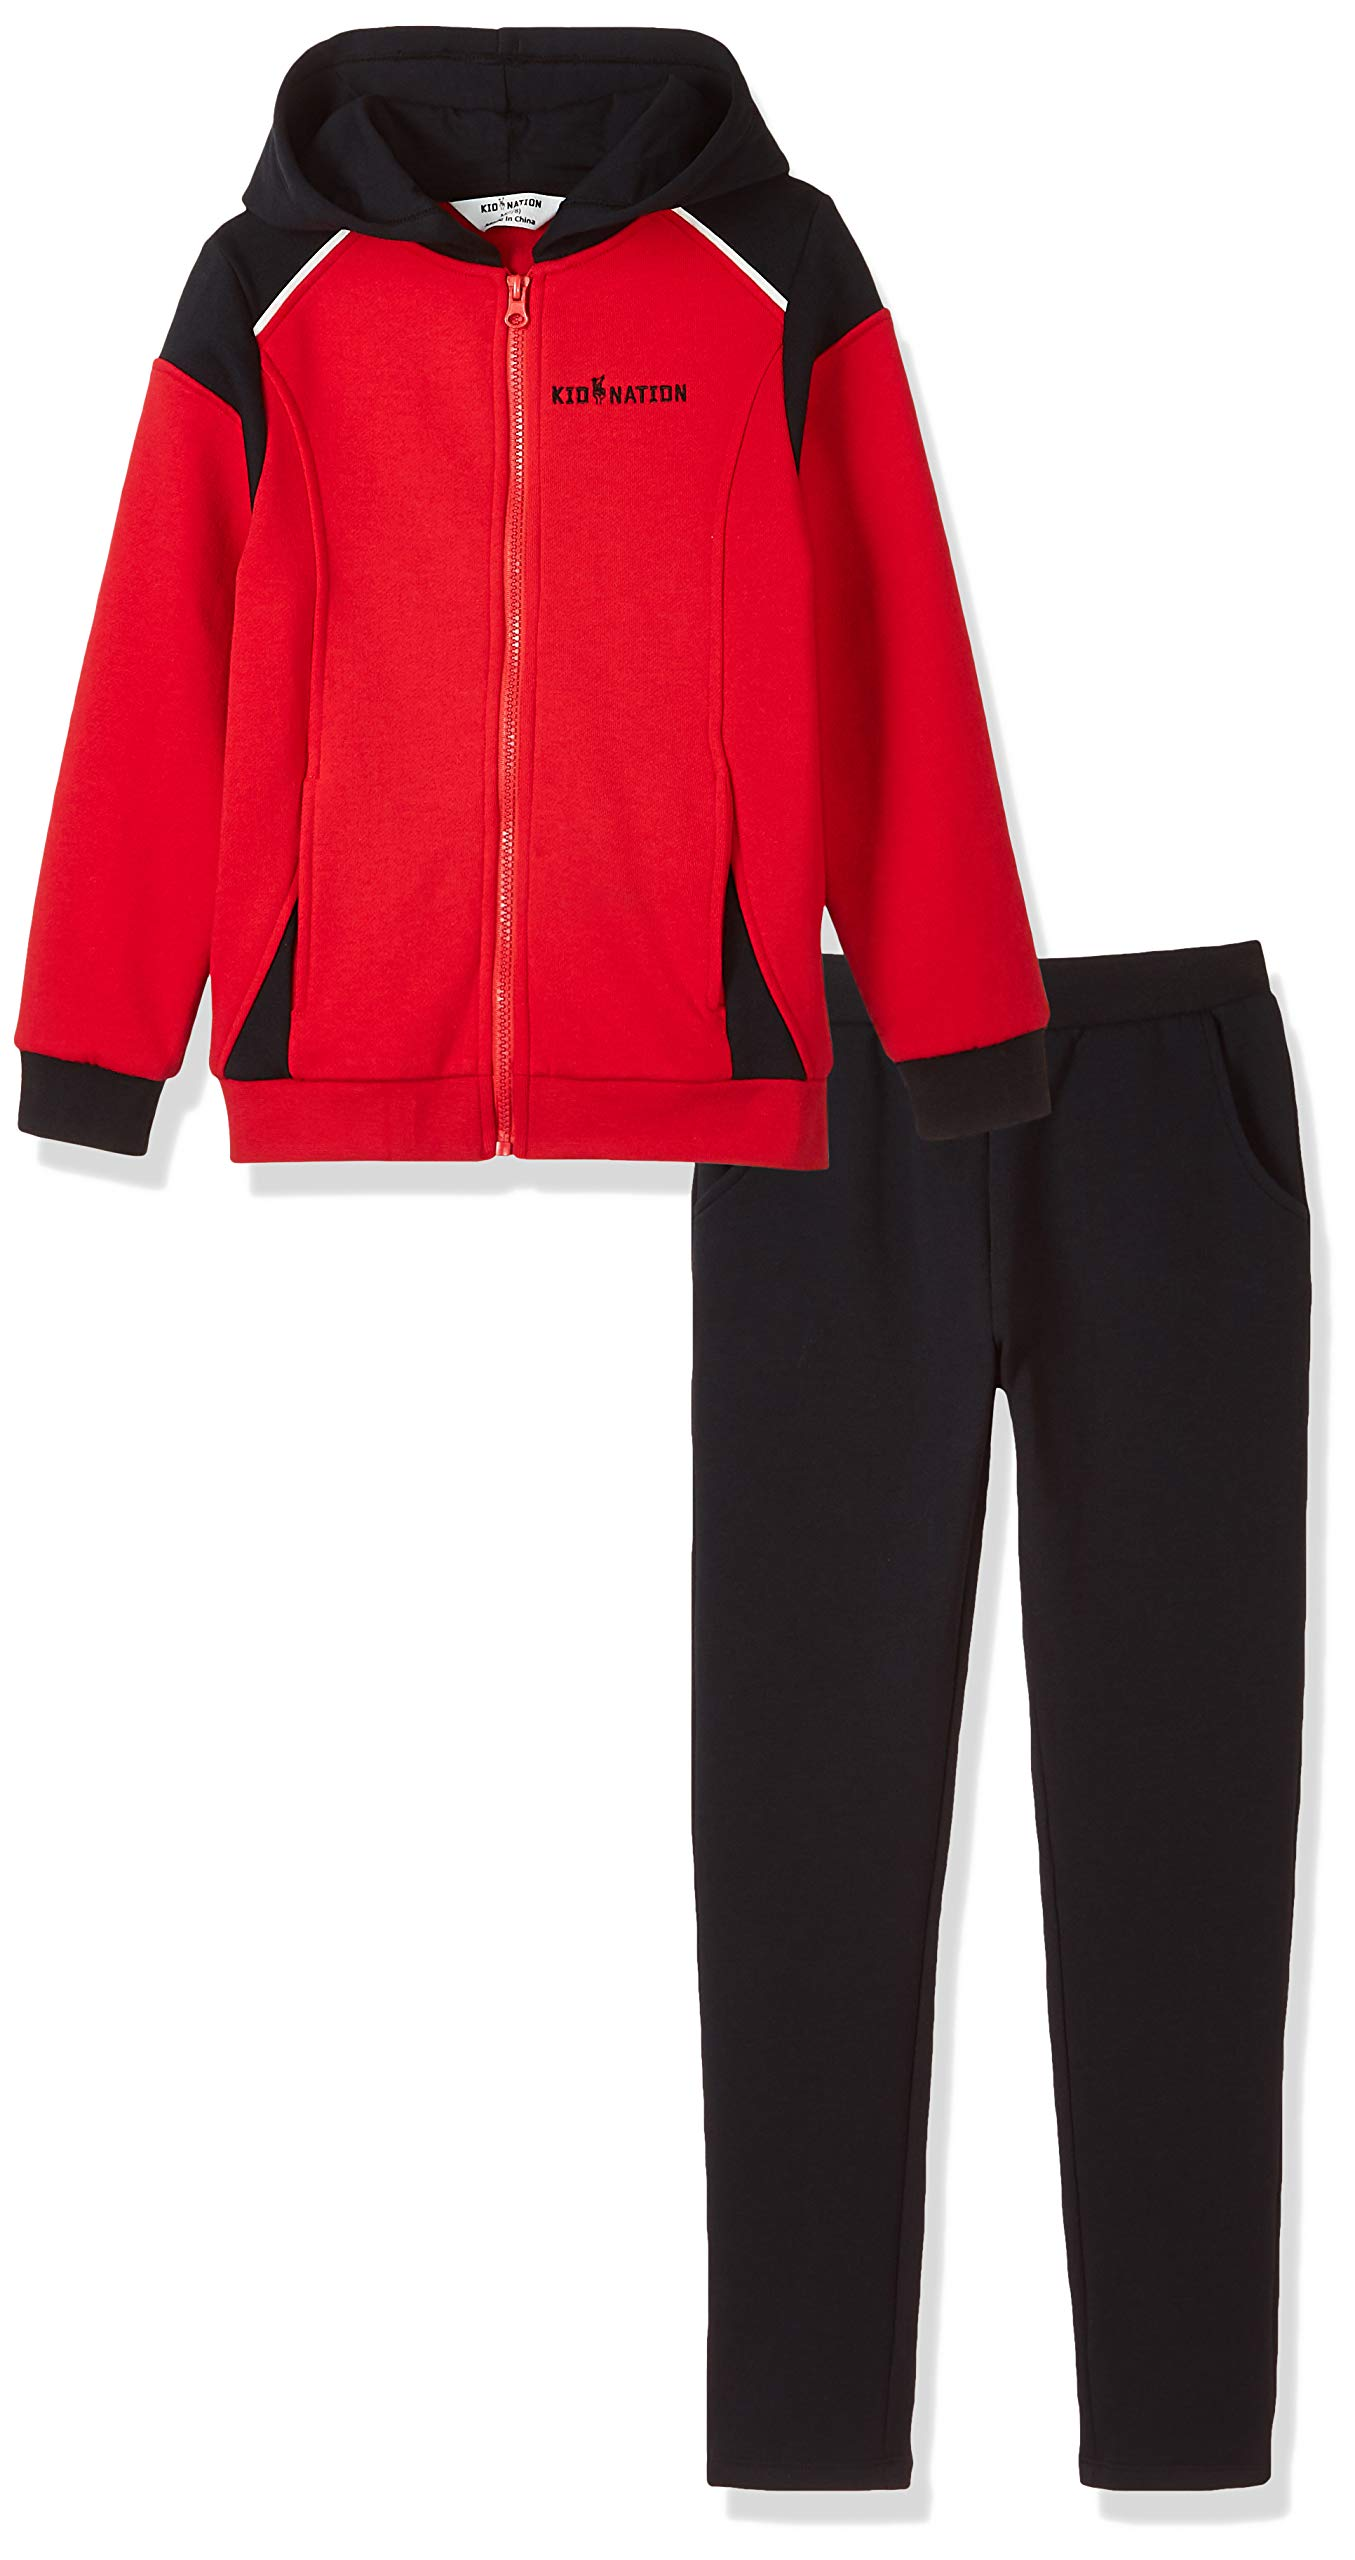 Kid Nation Kids' Sport Hooded Jacket Pants Set for Boys and Girls Red/Black/White XL by Kid Nation